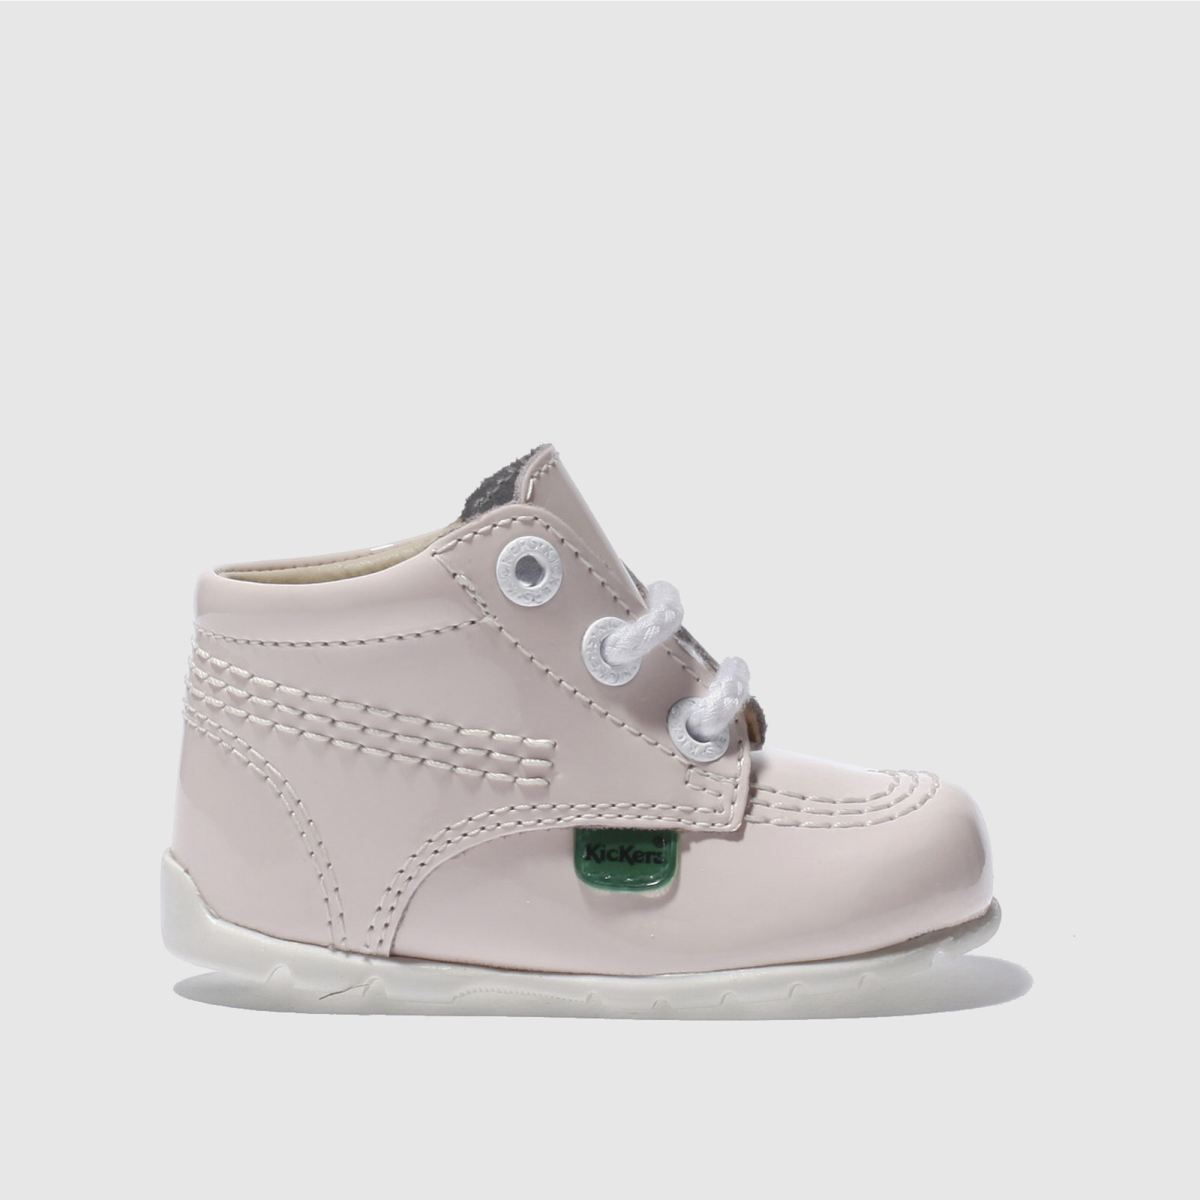 Kickers Pale Pink Hi Patent Lace Shoes Baby